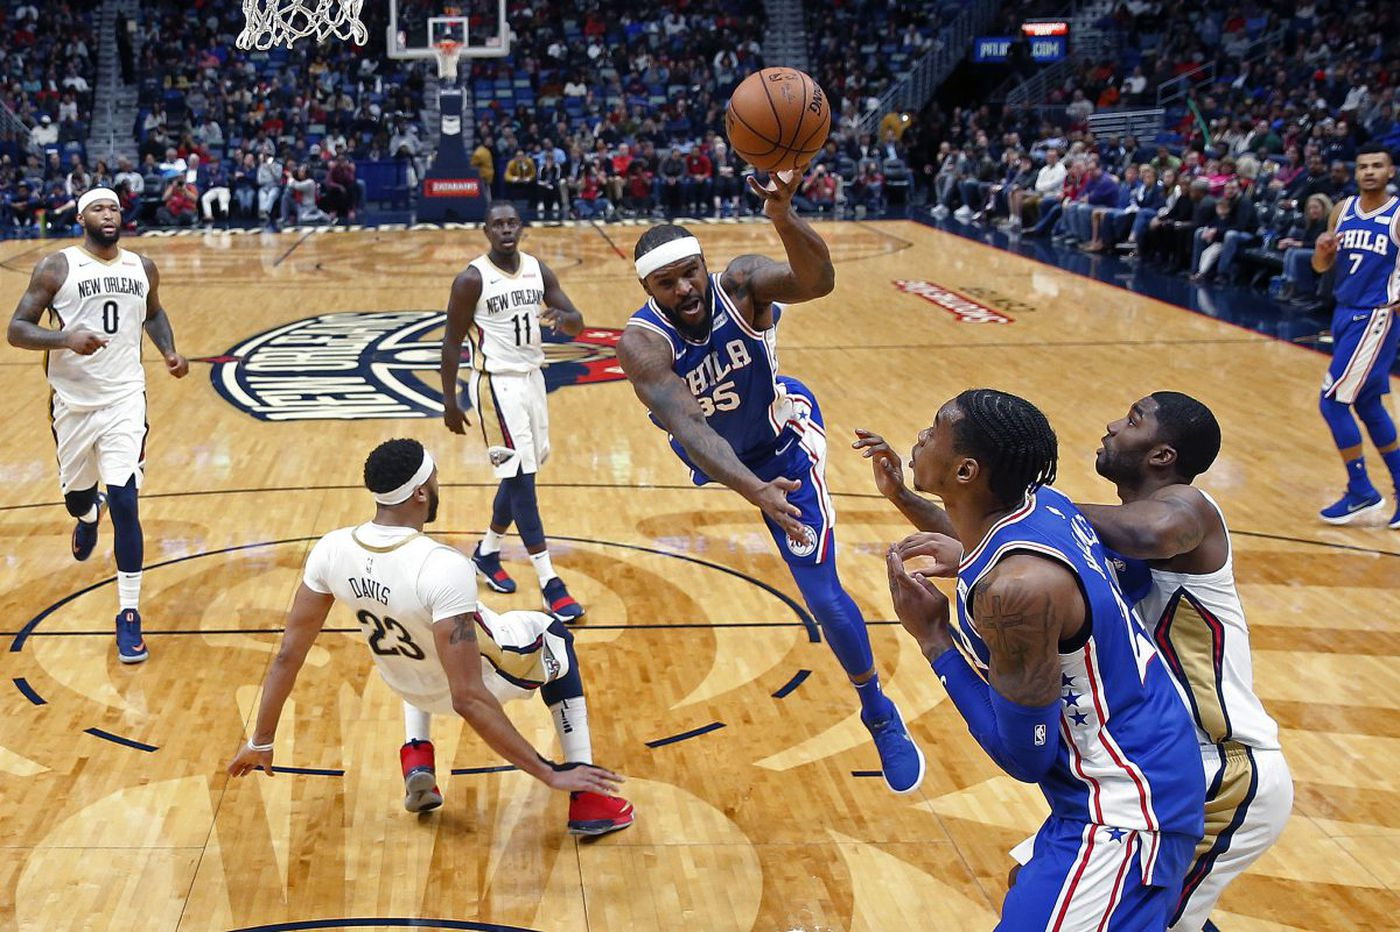 Trevor Booker contributes, and other observations from Sixers-Pelicans